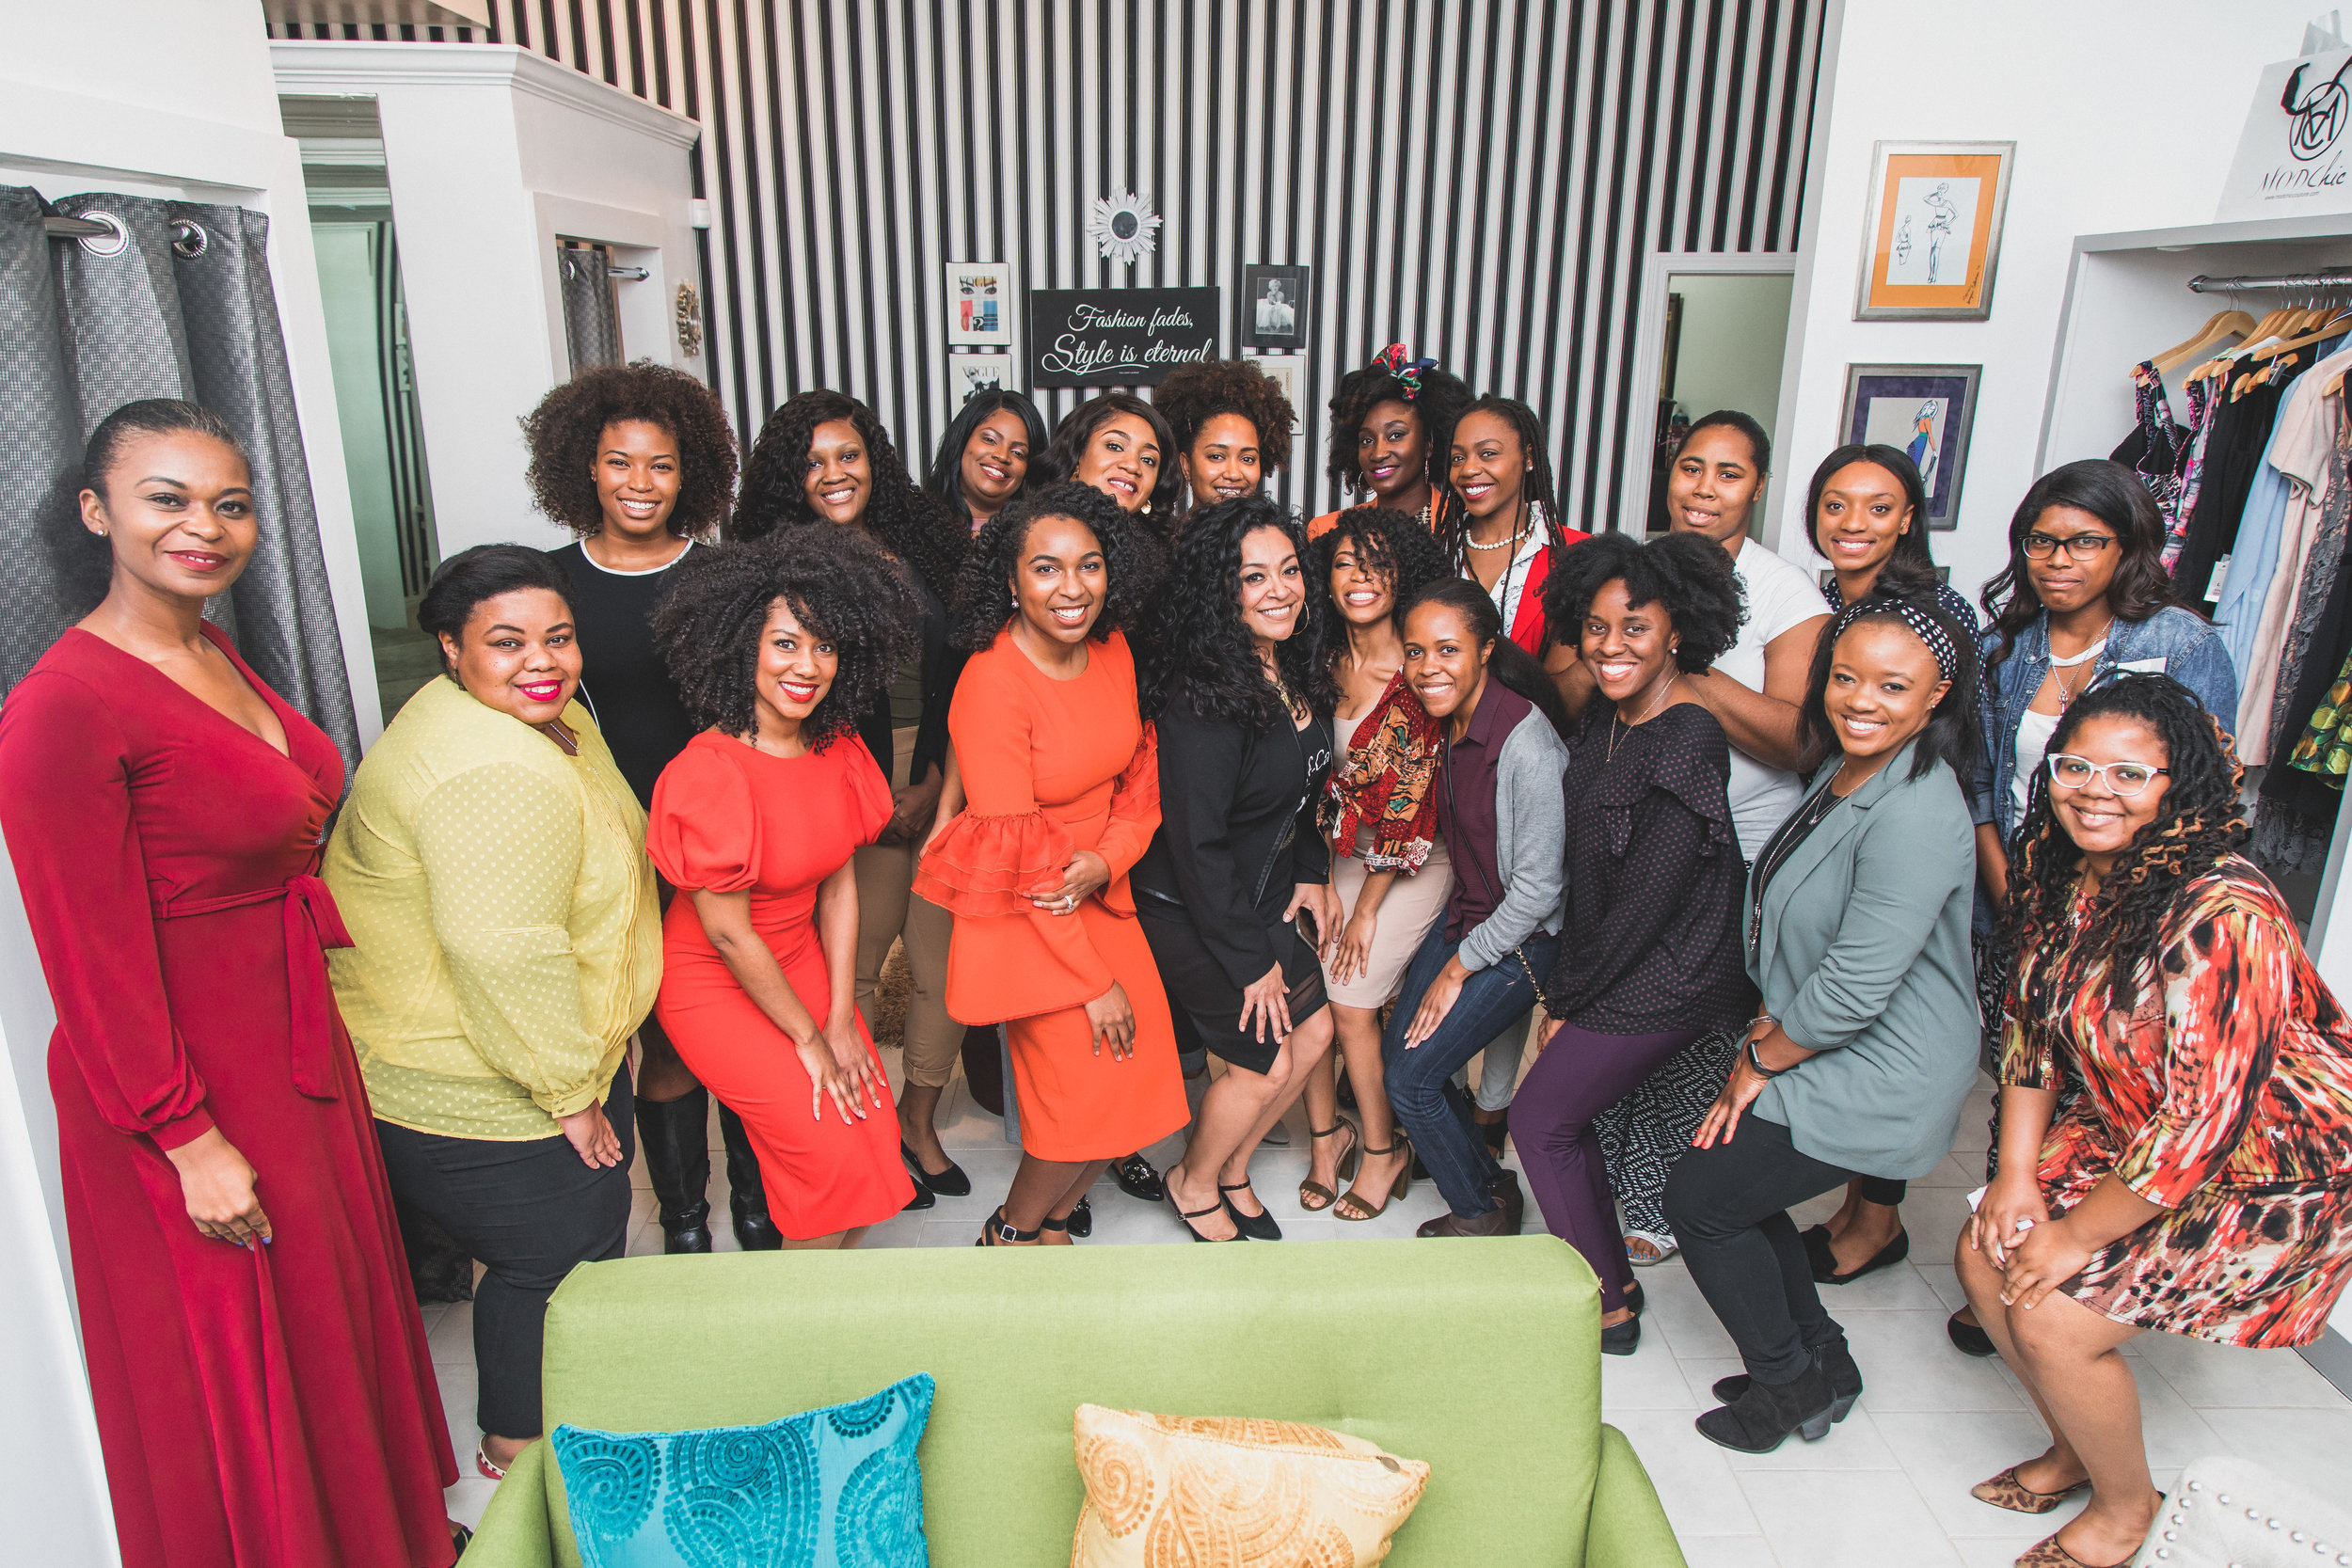 black-women-latina-women-events-houston.jpeg